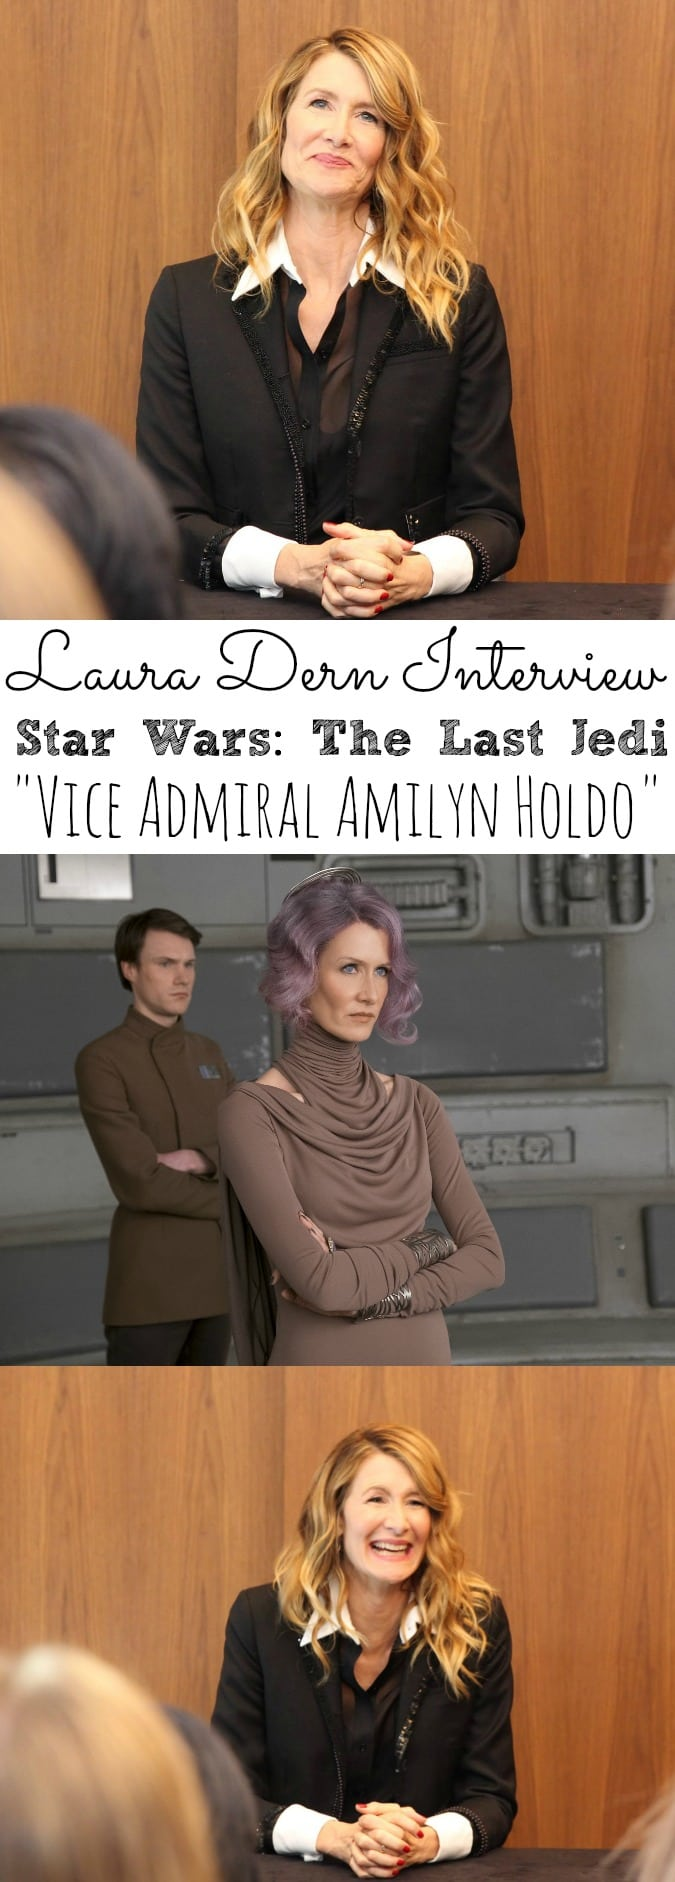 Interview With Laura Dern About Star Wars: The Last Jedi #TheLastJediEvent (ad)- simplytodaylife.com